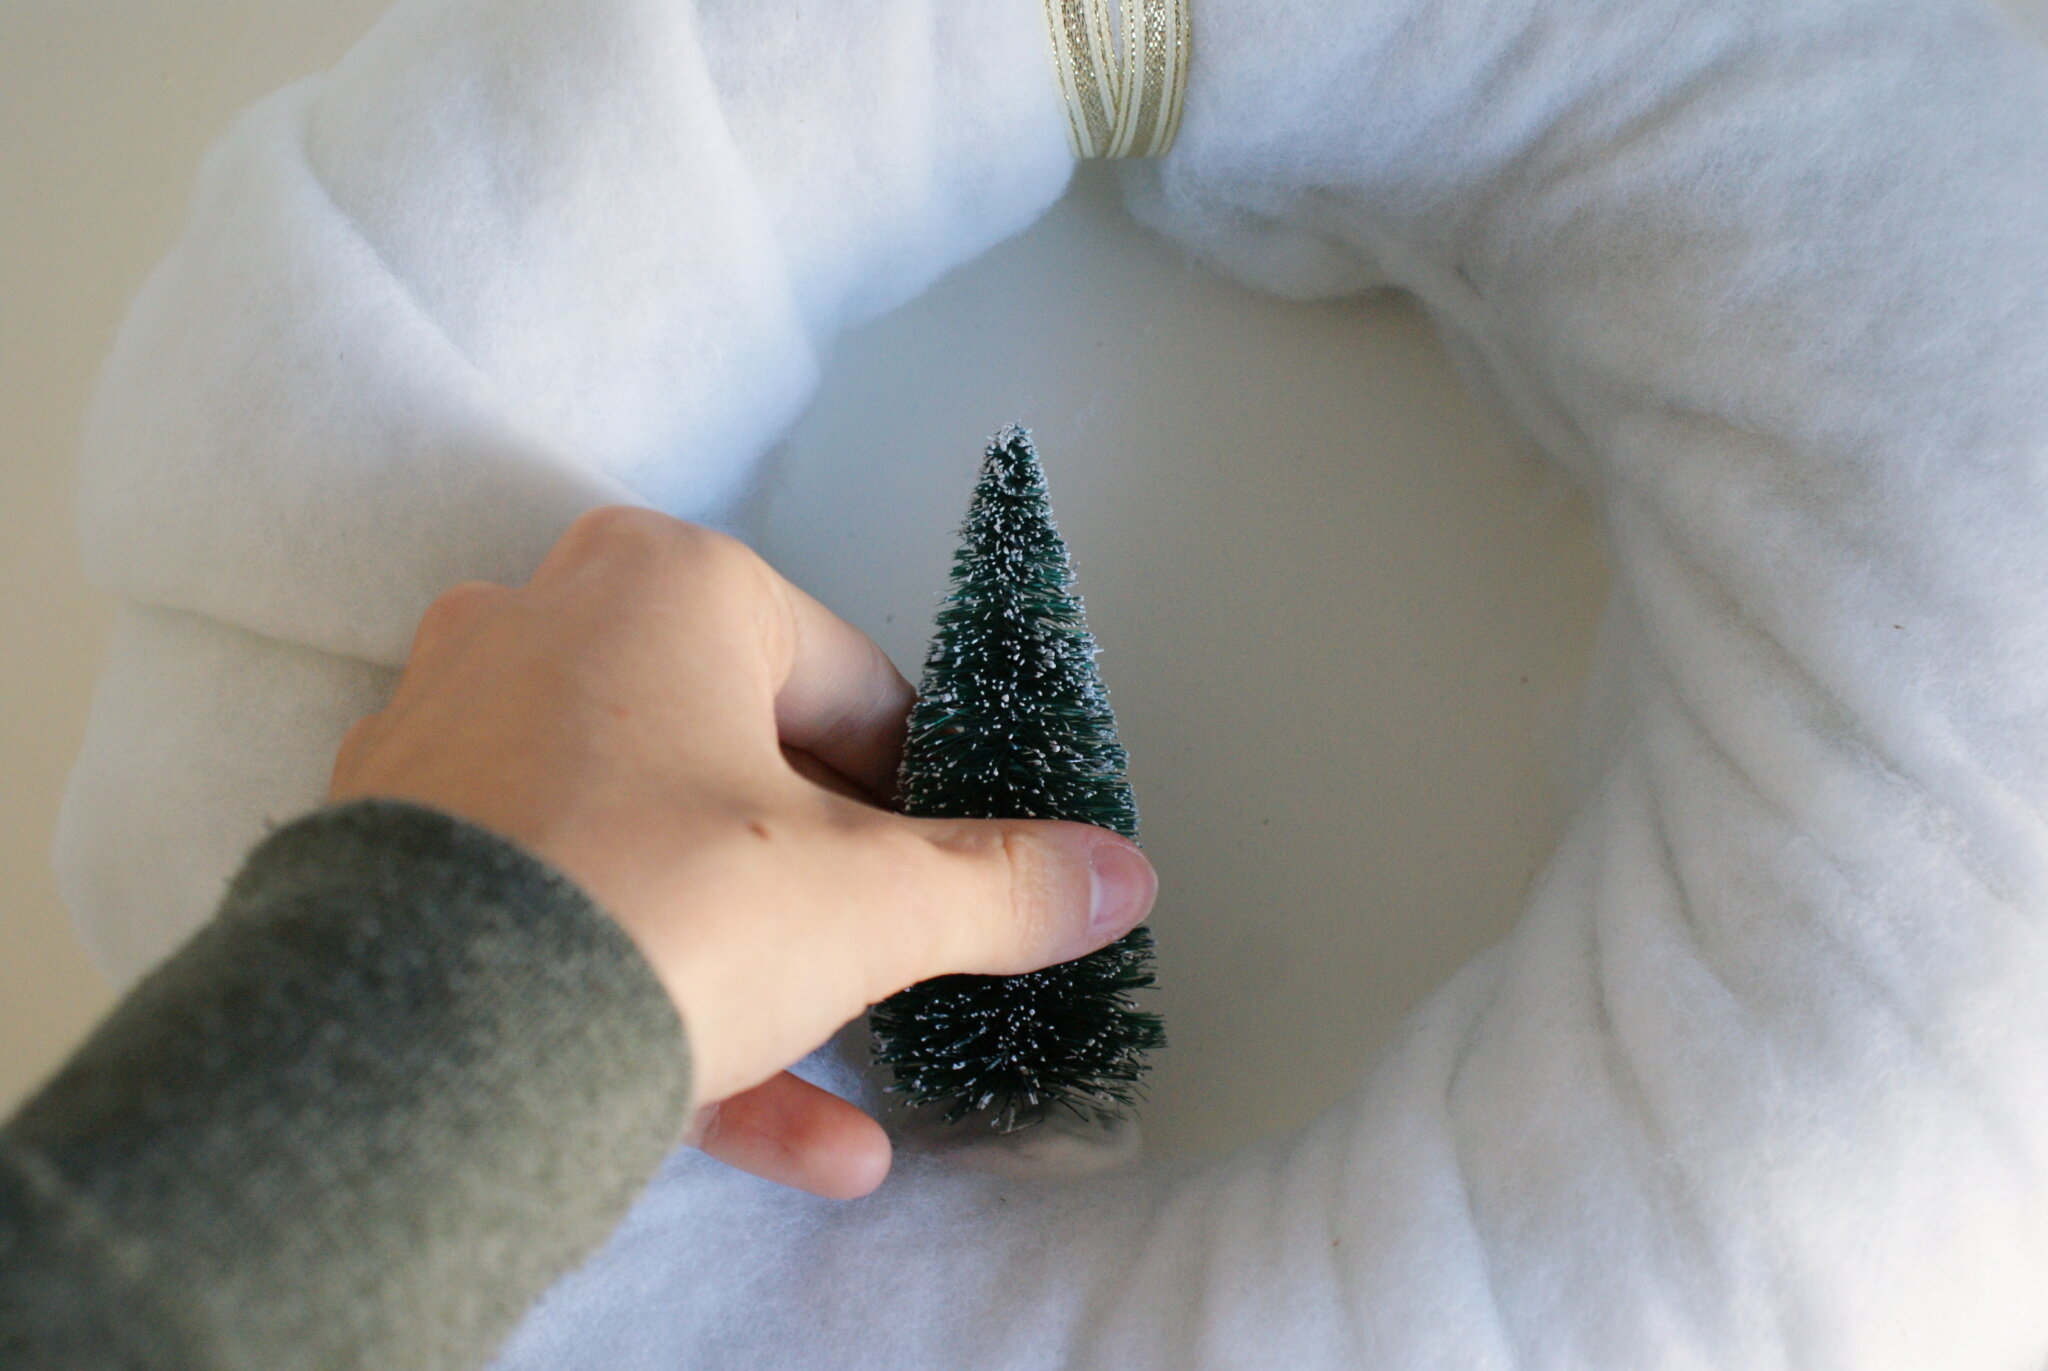 diy hanging miniature wreath snow white cotton tree christmas tutorial easy last minute